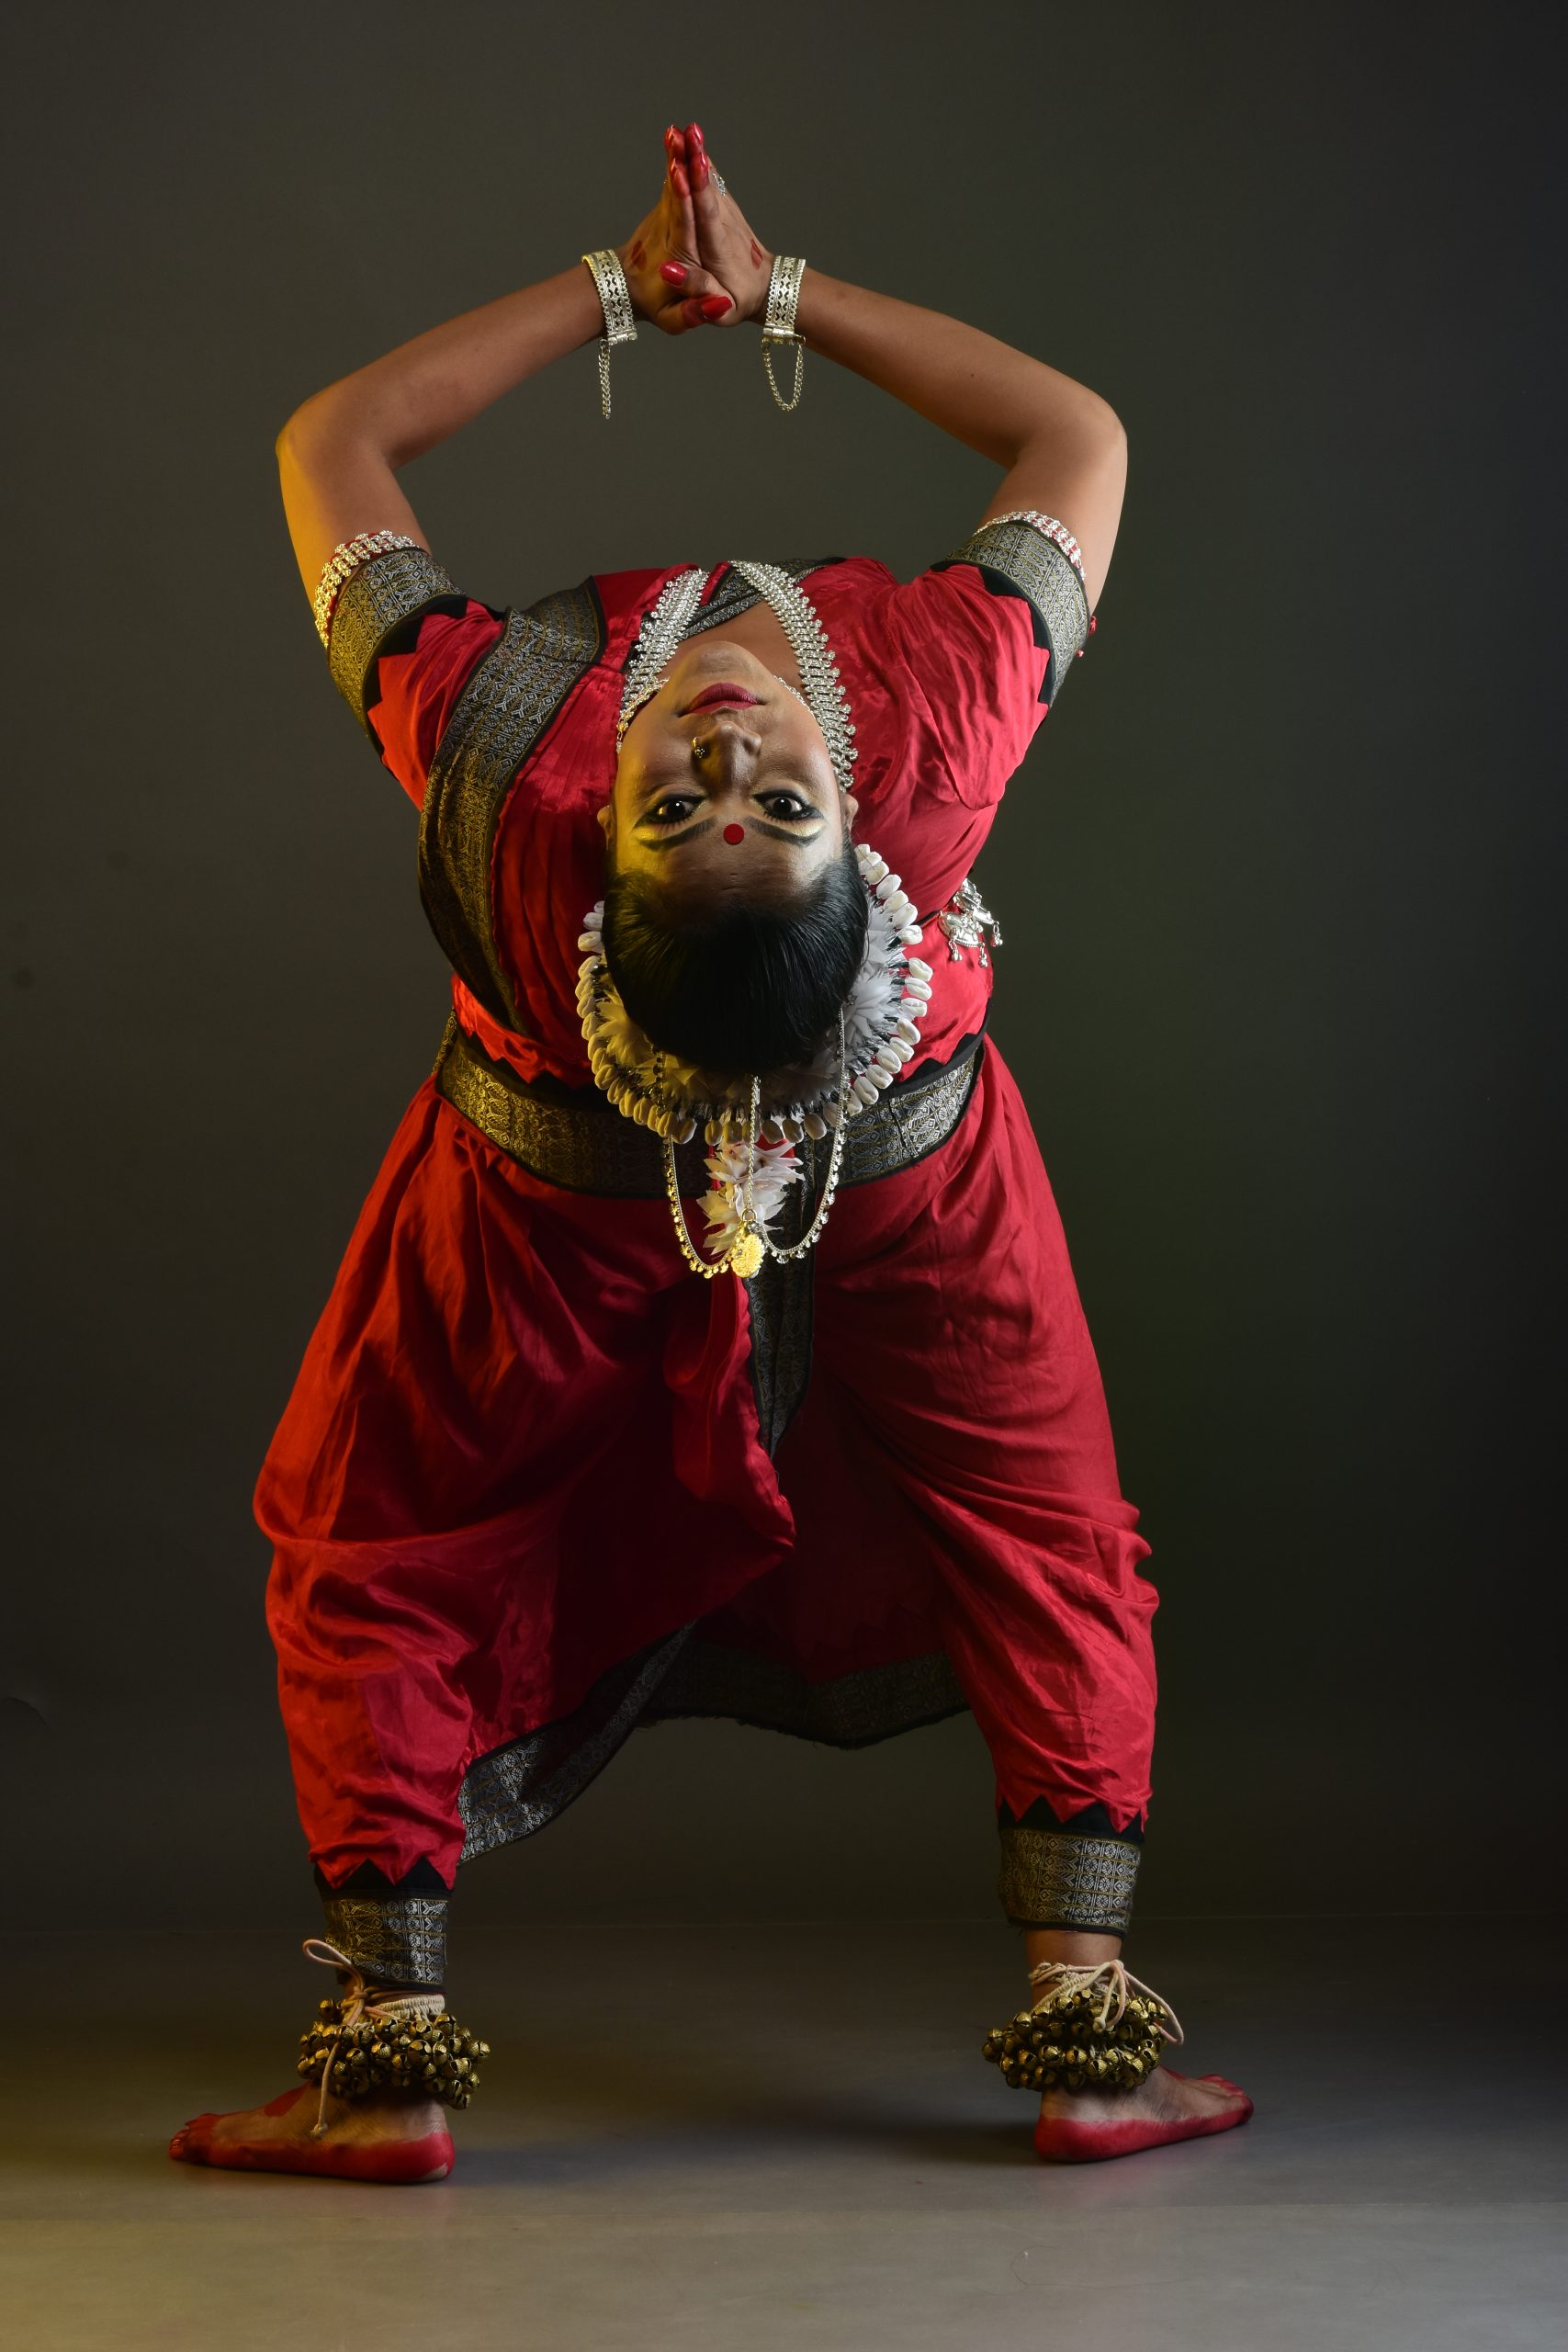 The upturn pose by a dancer